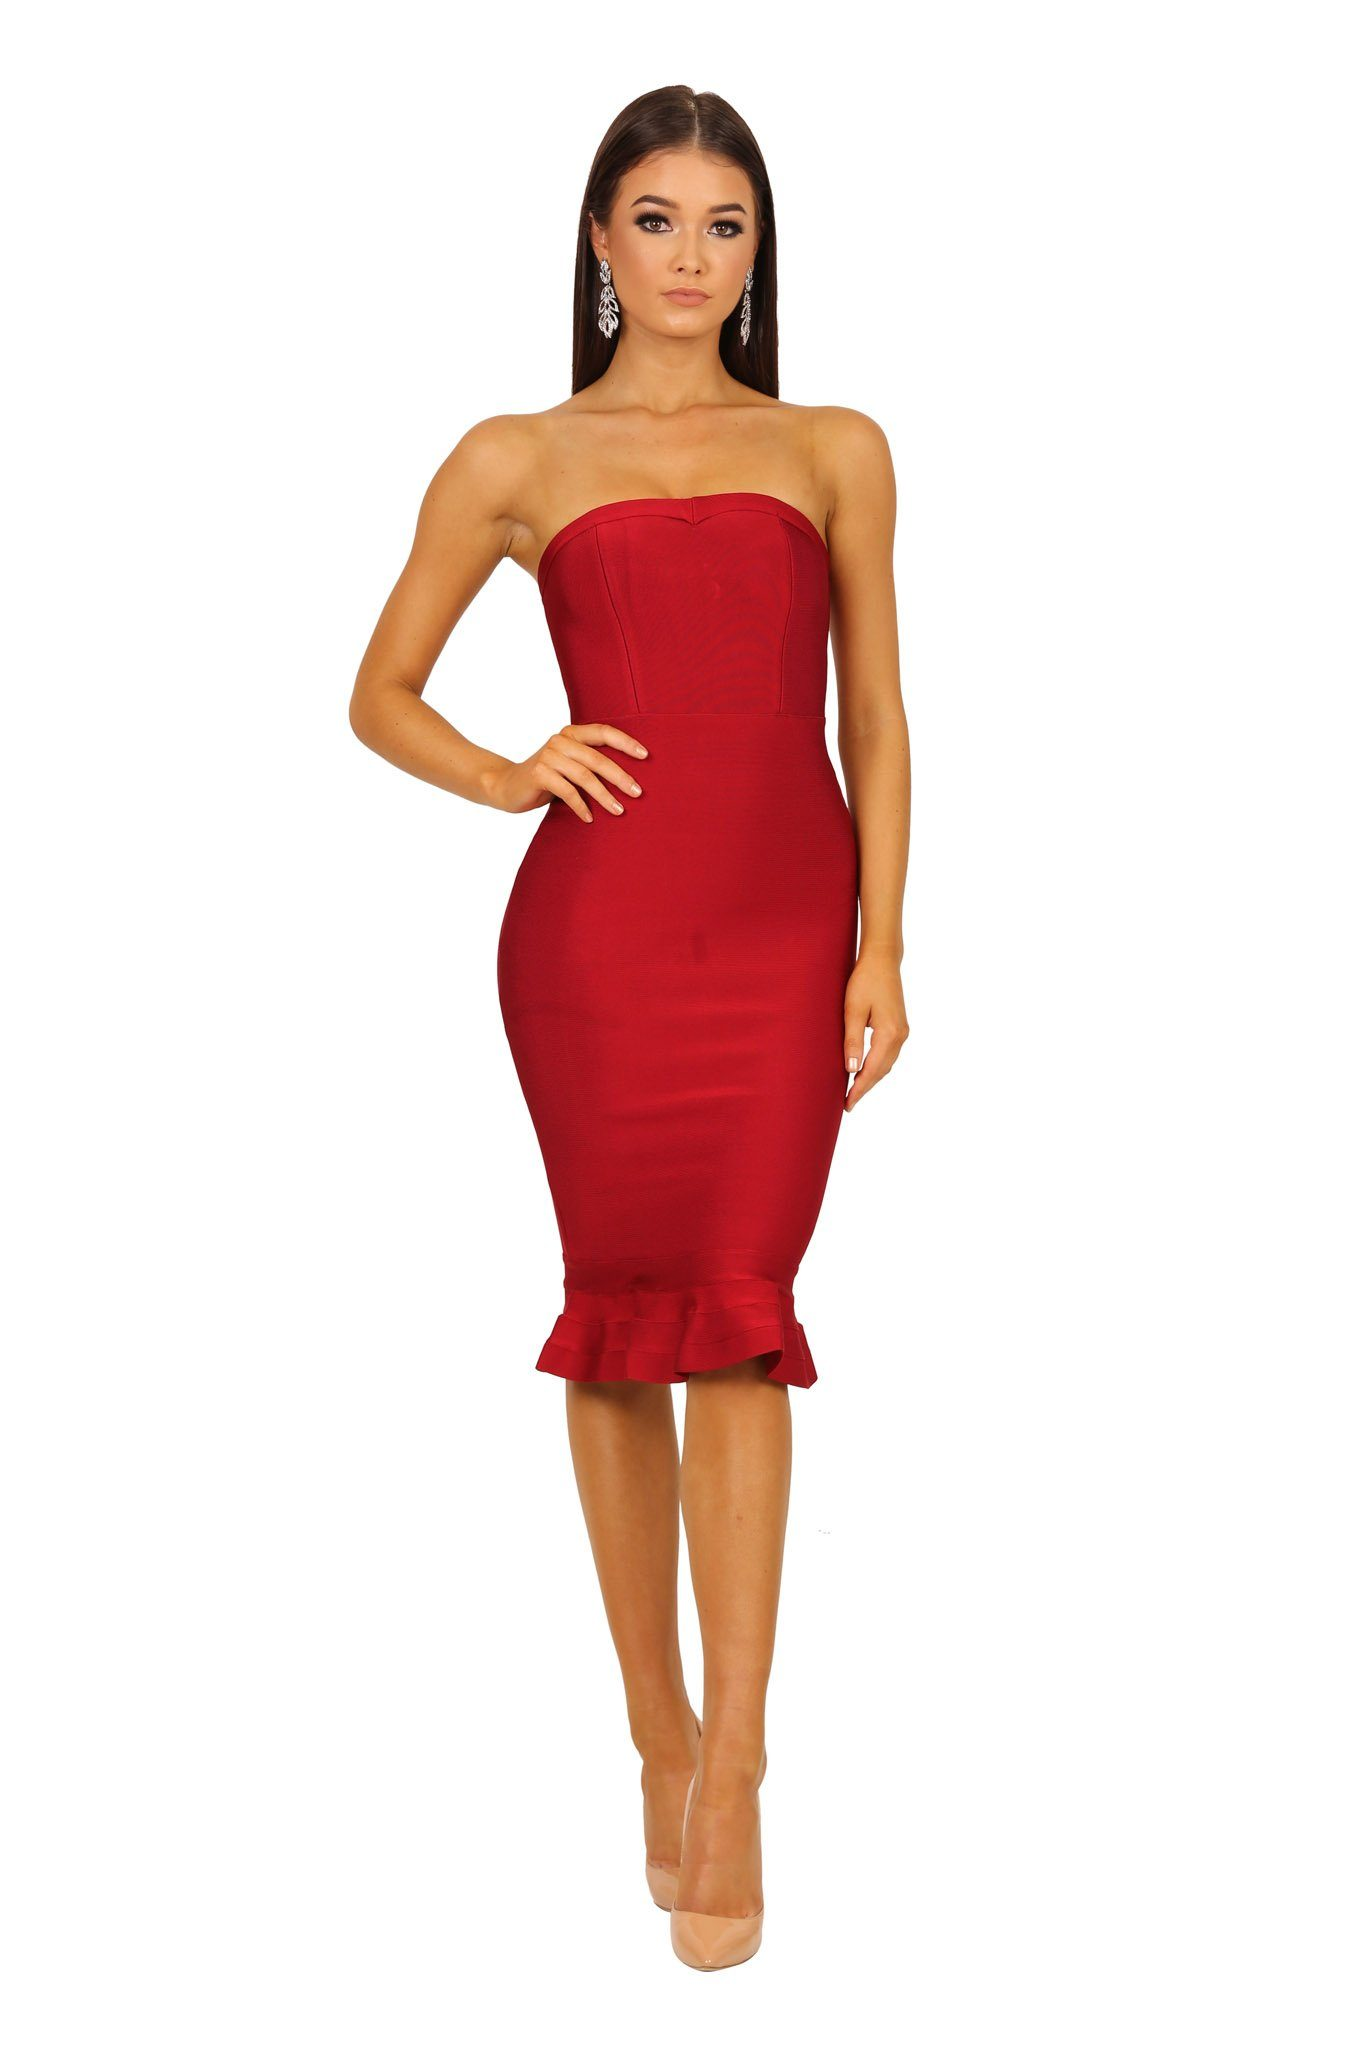 Wine red strapless bandage dress with fluted hem design in midi length